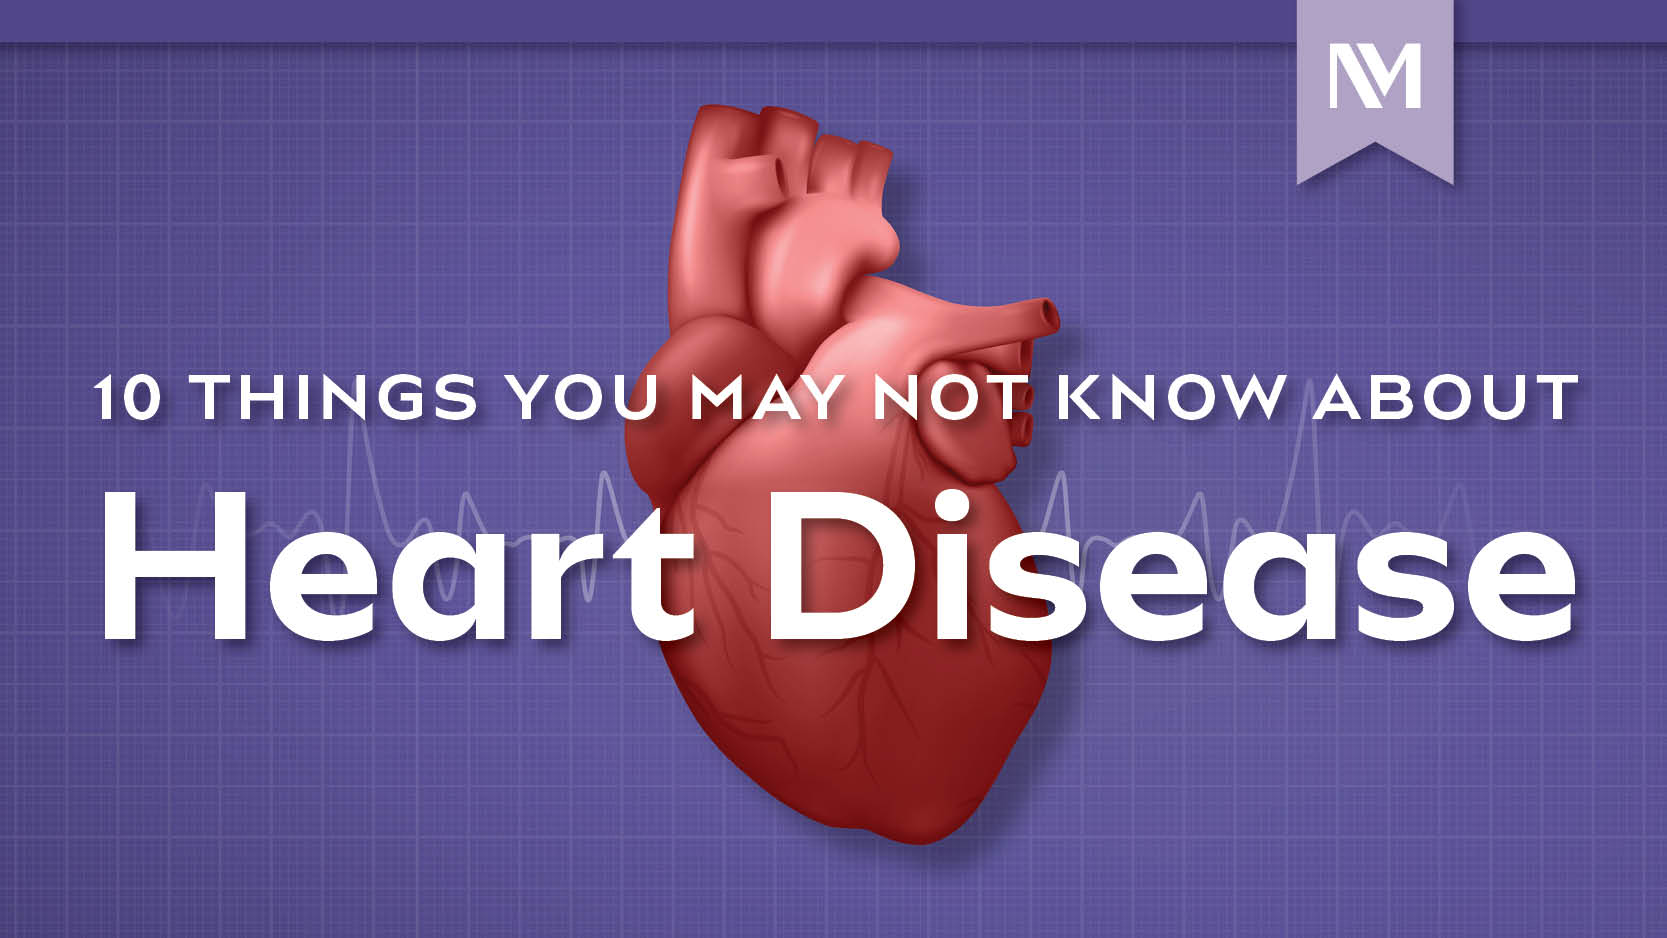 nm-10-things-you-may-not-know-heart-disease_preview